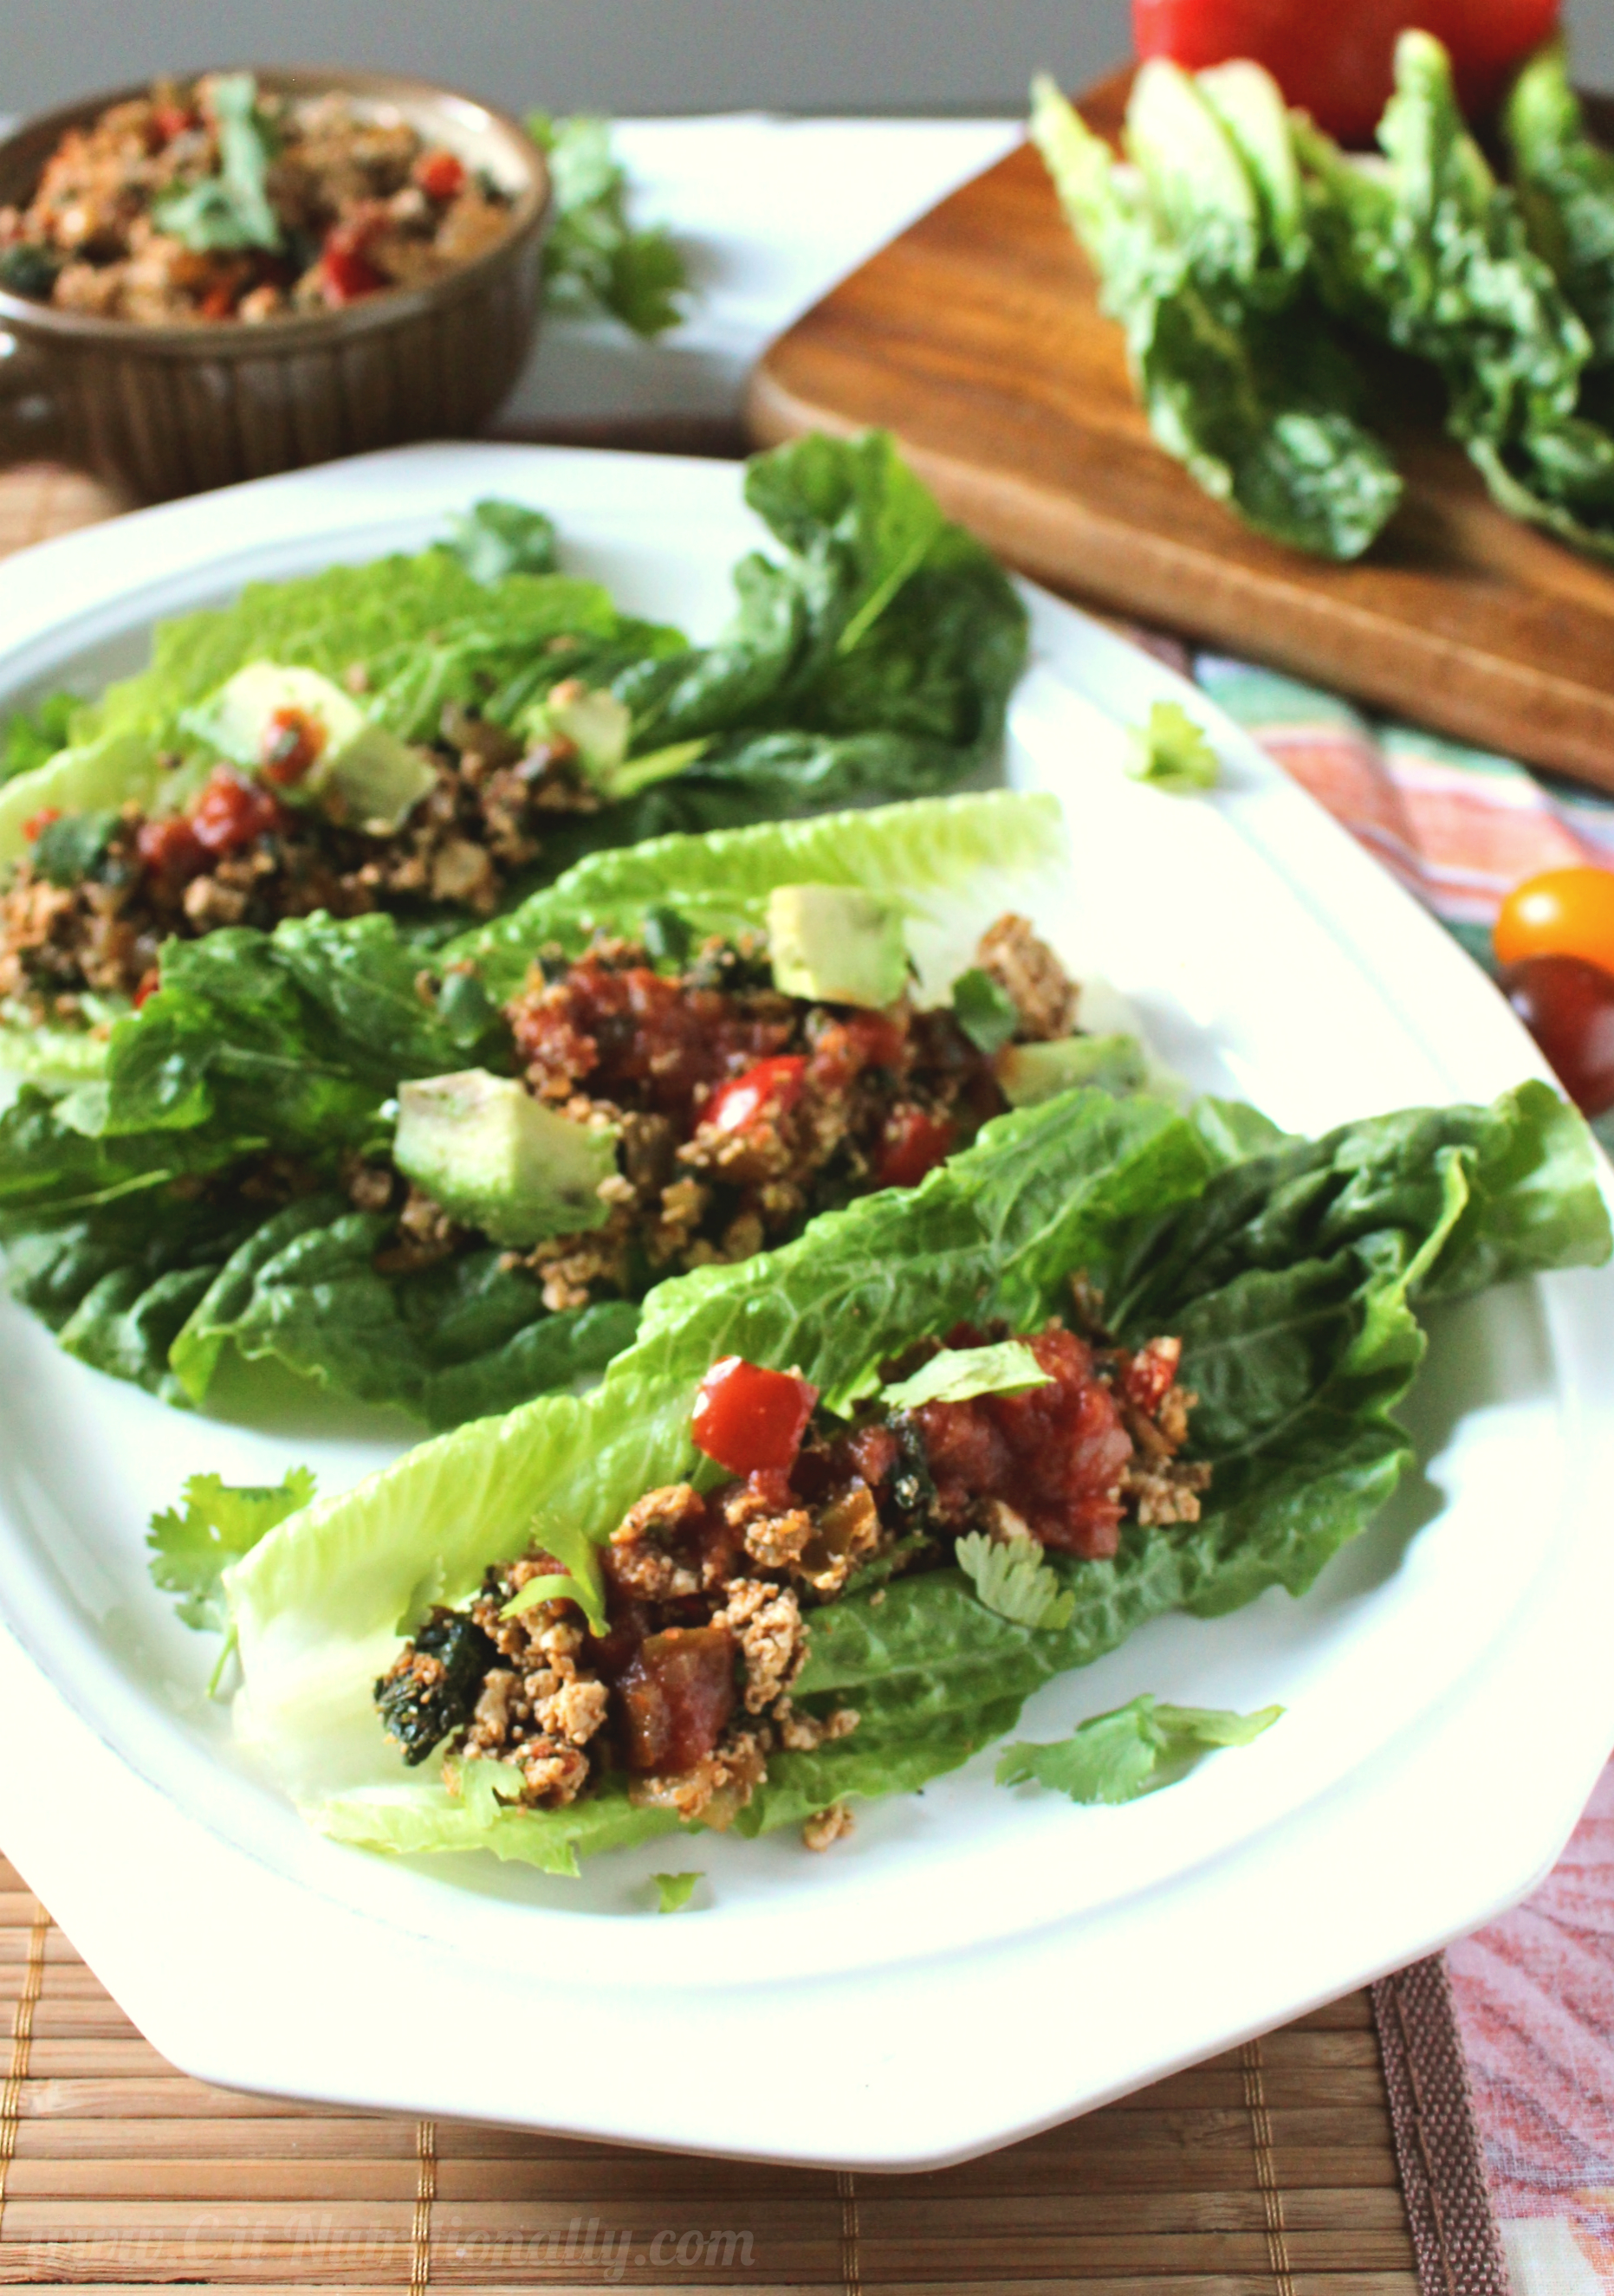 Tofu Tacos in Lettuce Cups | C it Nutritionally #vegan #vegetarian #meatlessmonday